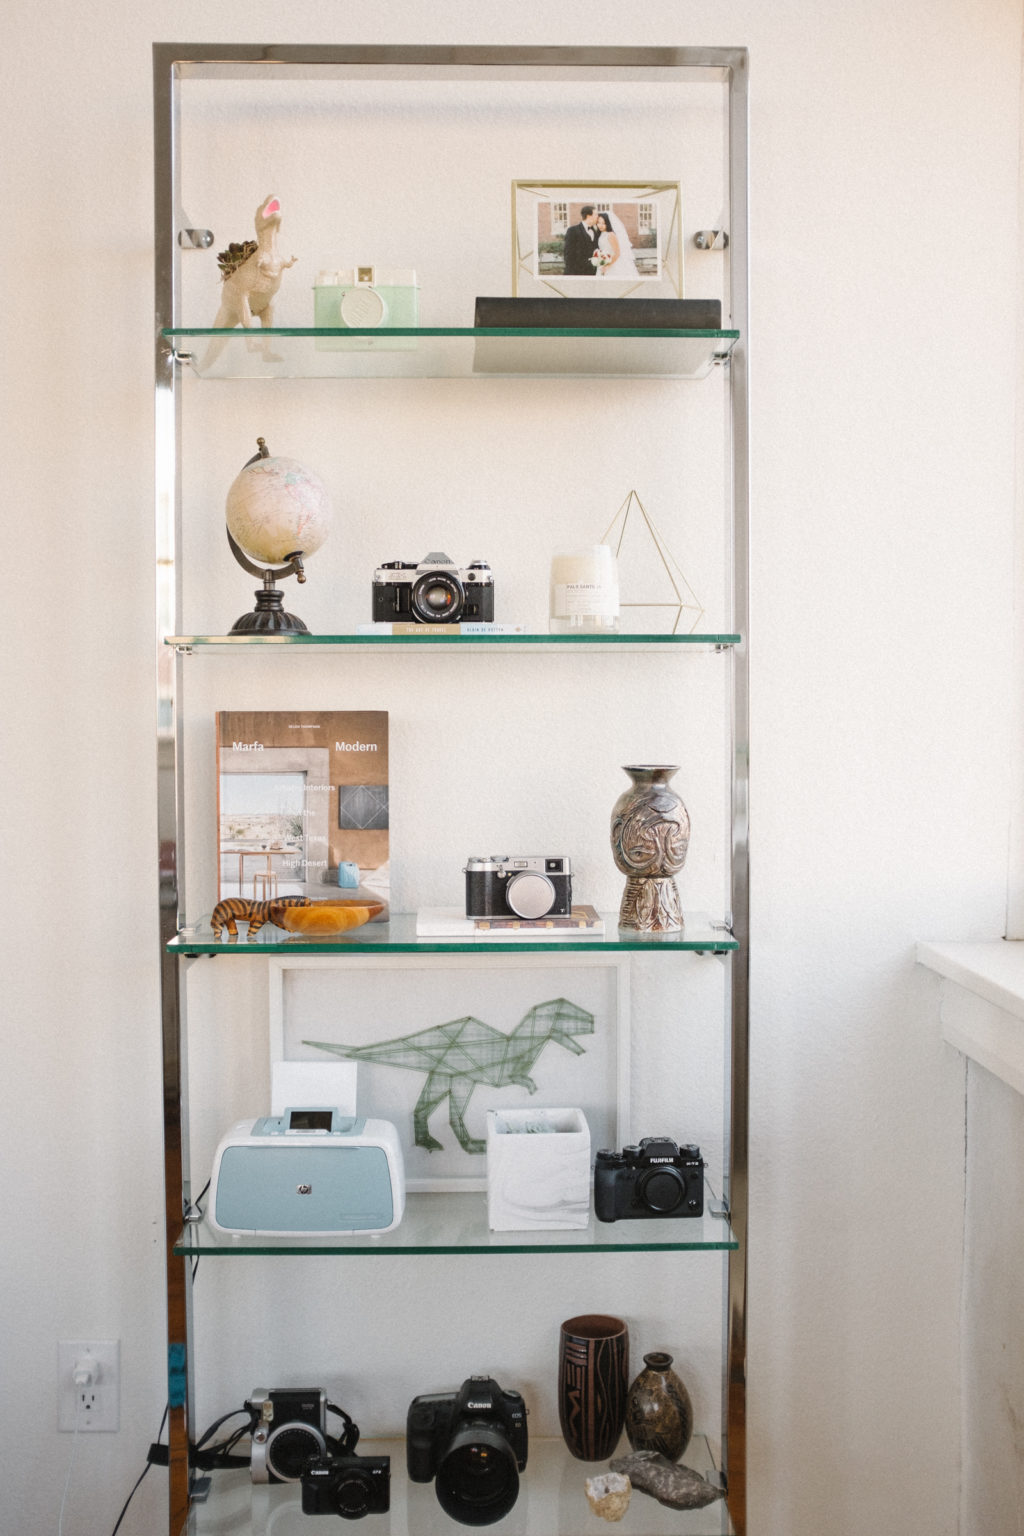 Bookshelf Styling with Vintage Cameras